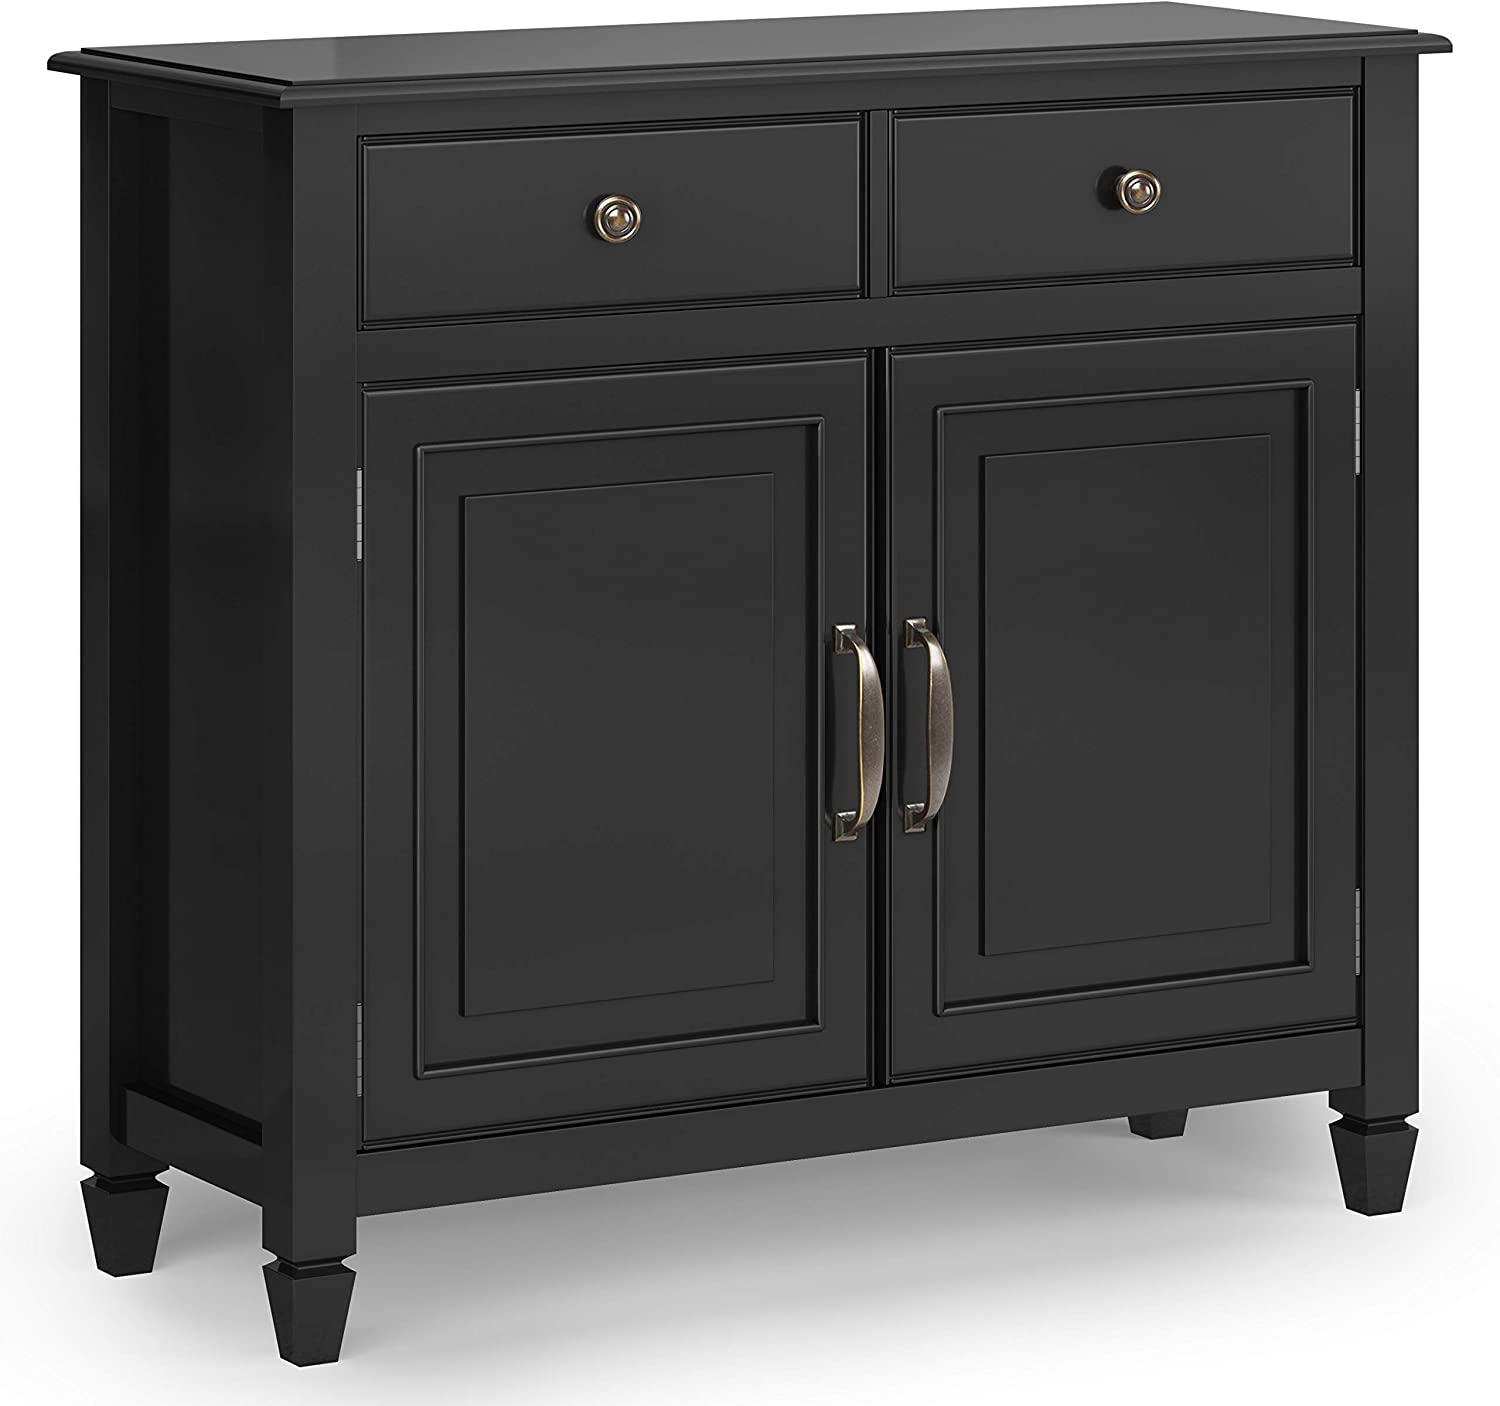 SIMPLIHOME Connaught SOLID WOOD 40 inch Wide Traditional Entryway Storage Cabinet in Black, with 2 Drawers, 2 Doors, Adjustable Shelves